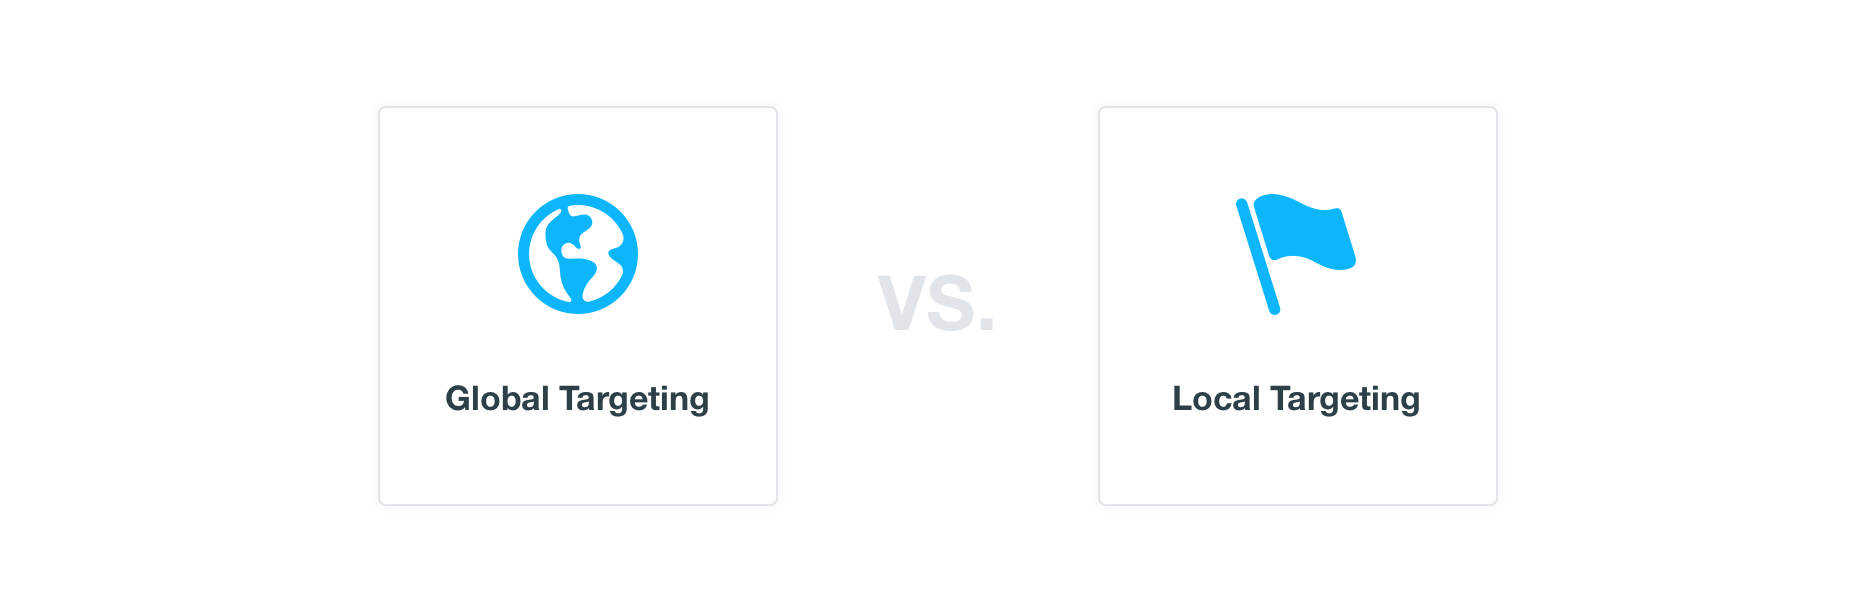 Hyperlocal marketing helps you target your audience based on location